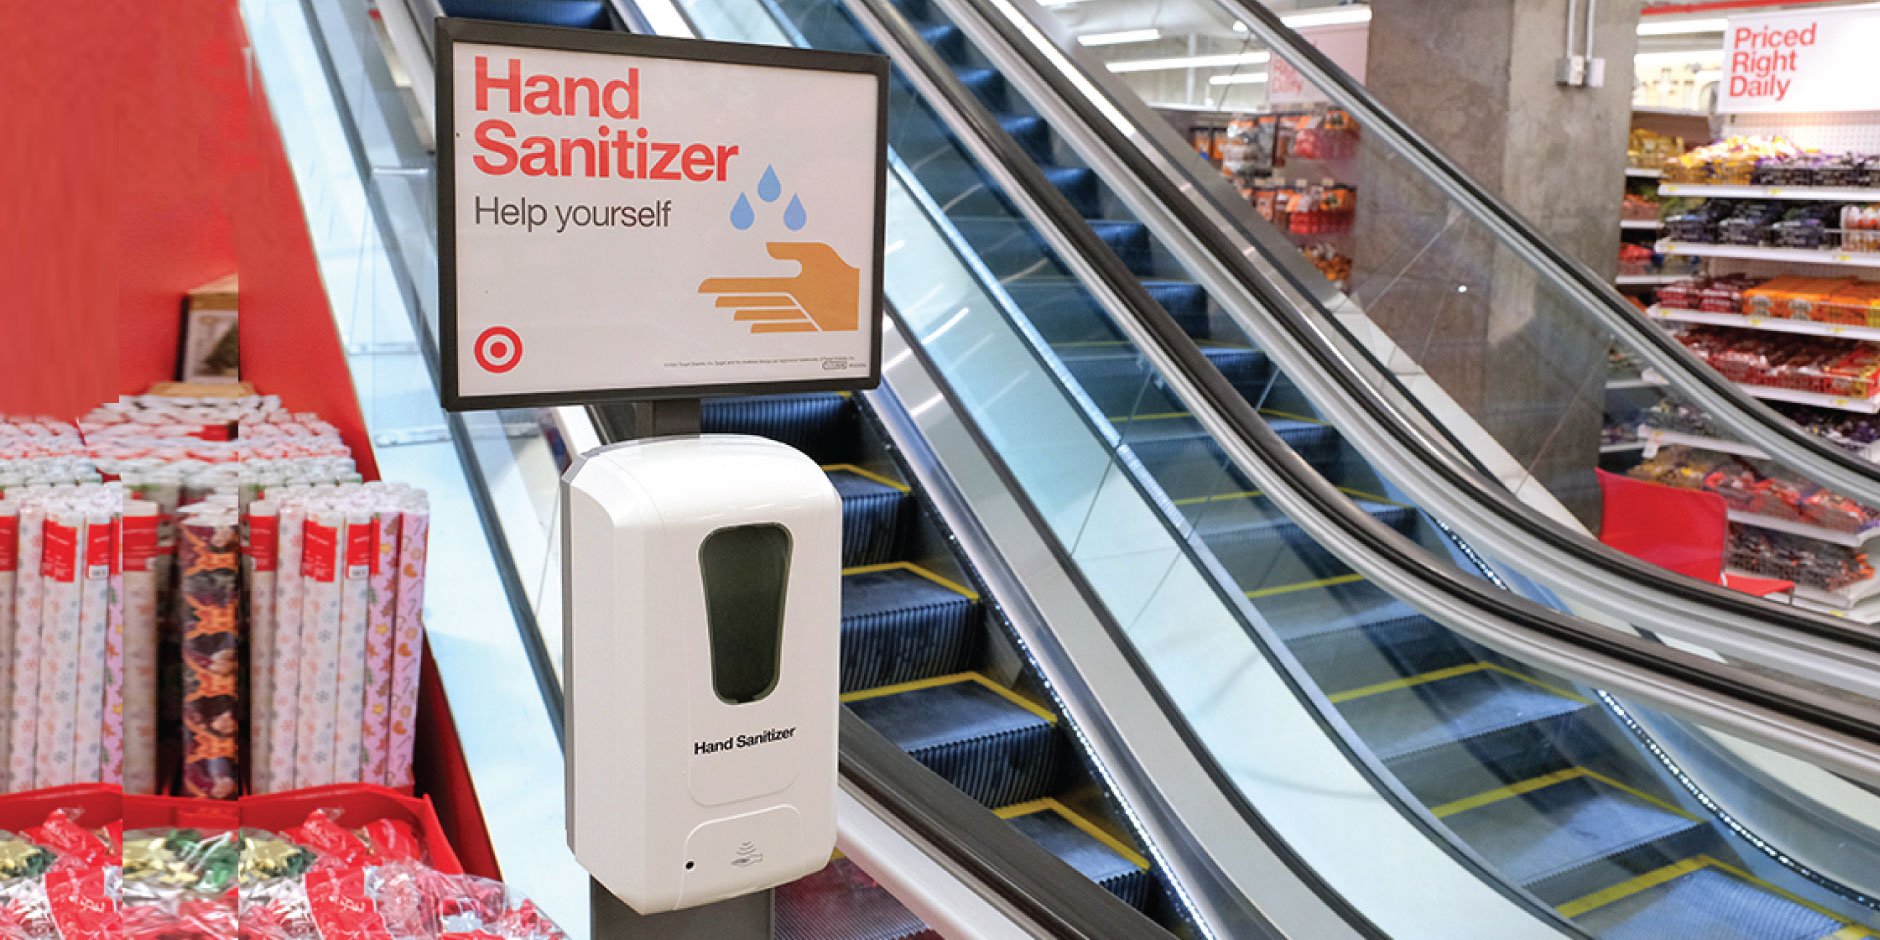 A hand sanitizing station is shown in a Target store with escalators in the background